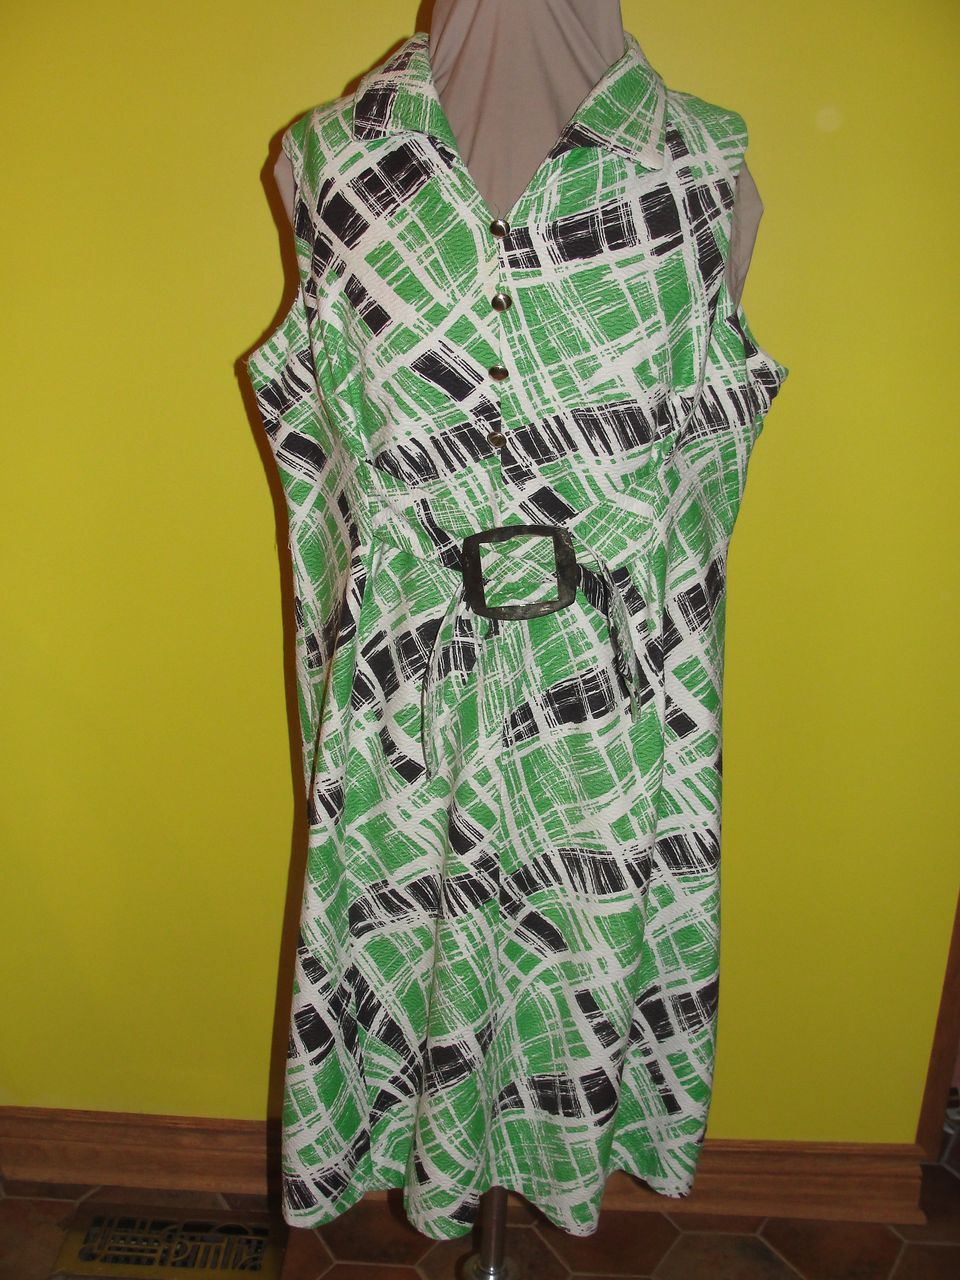 Green and White and Black all Over Dress